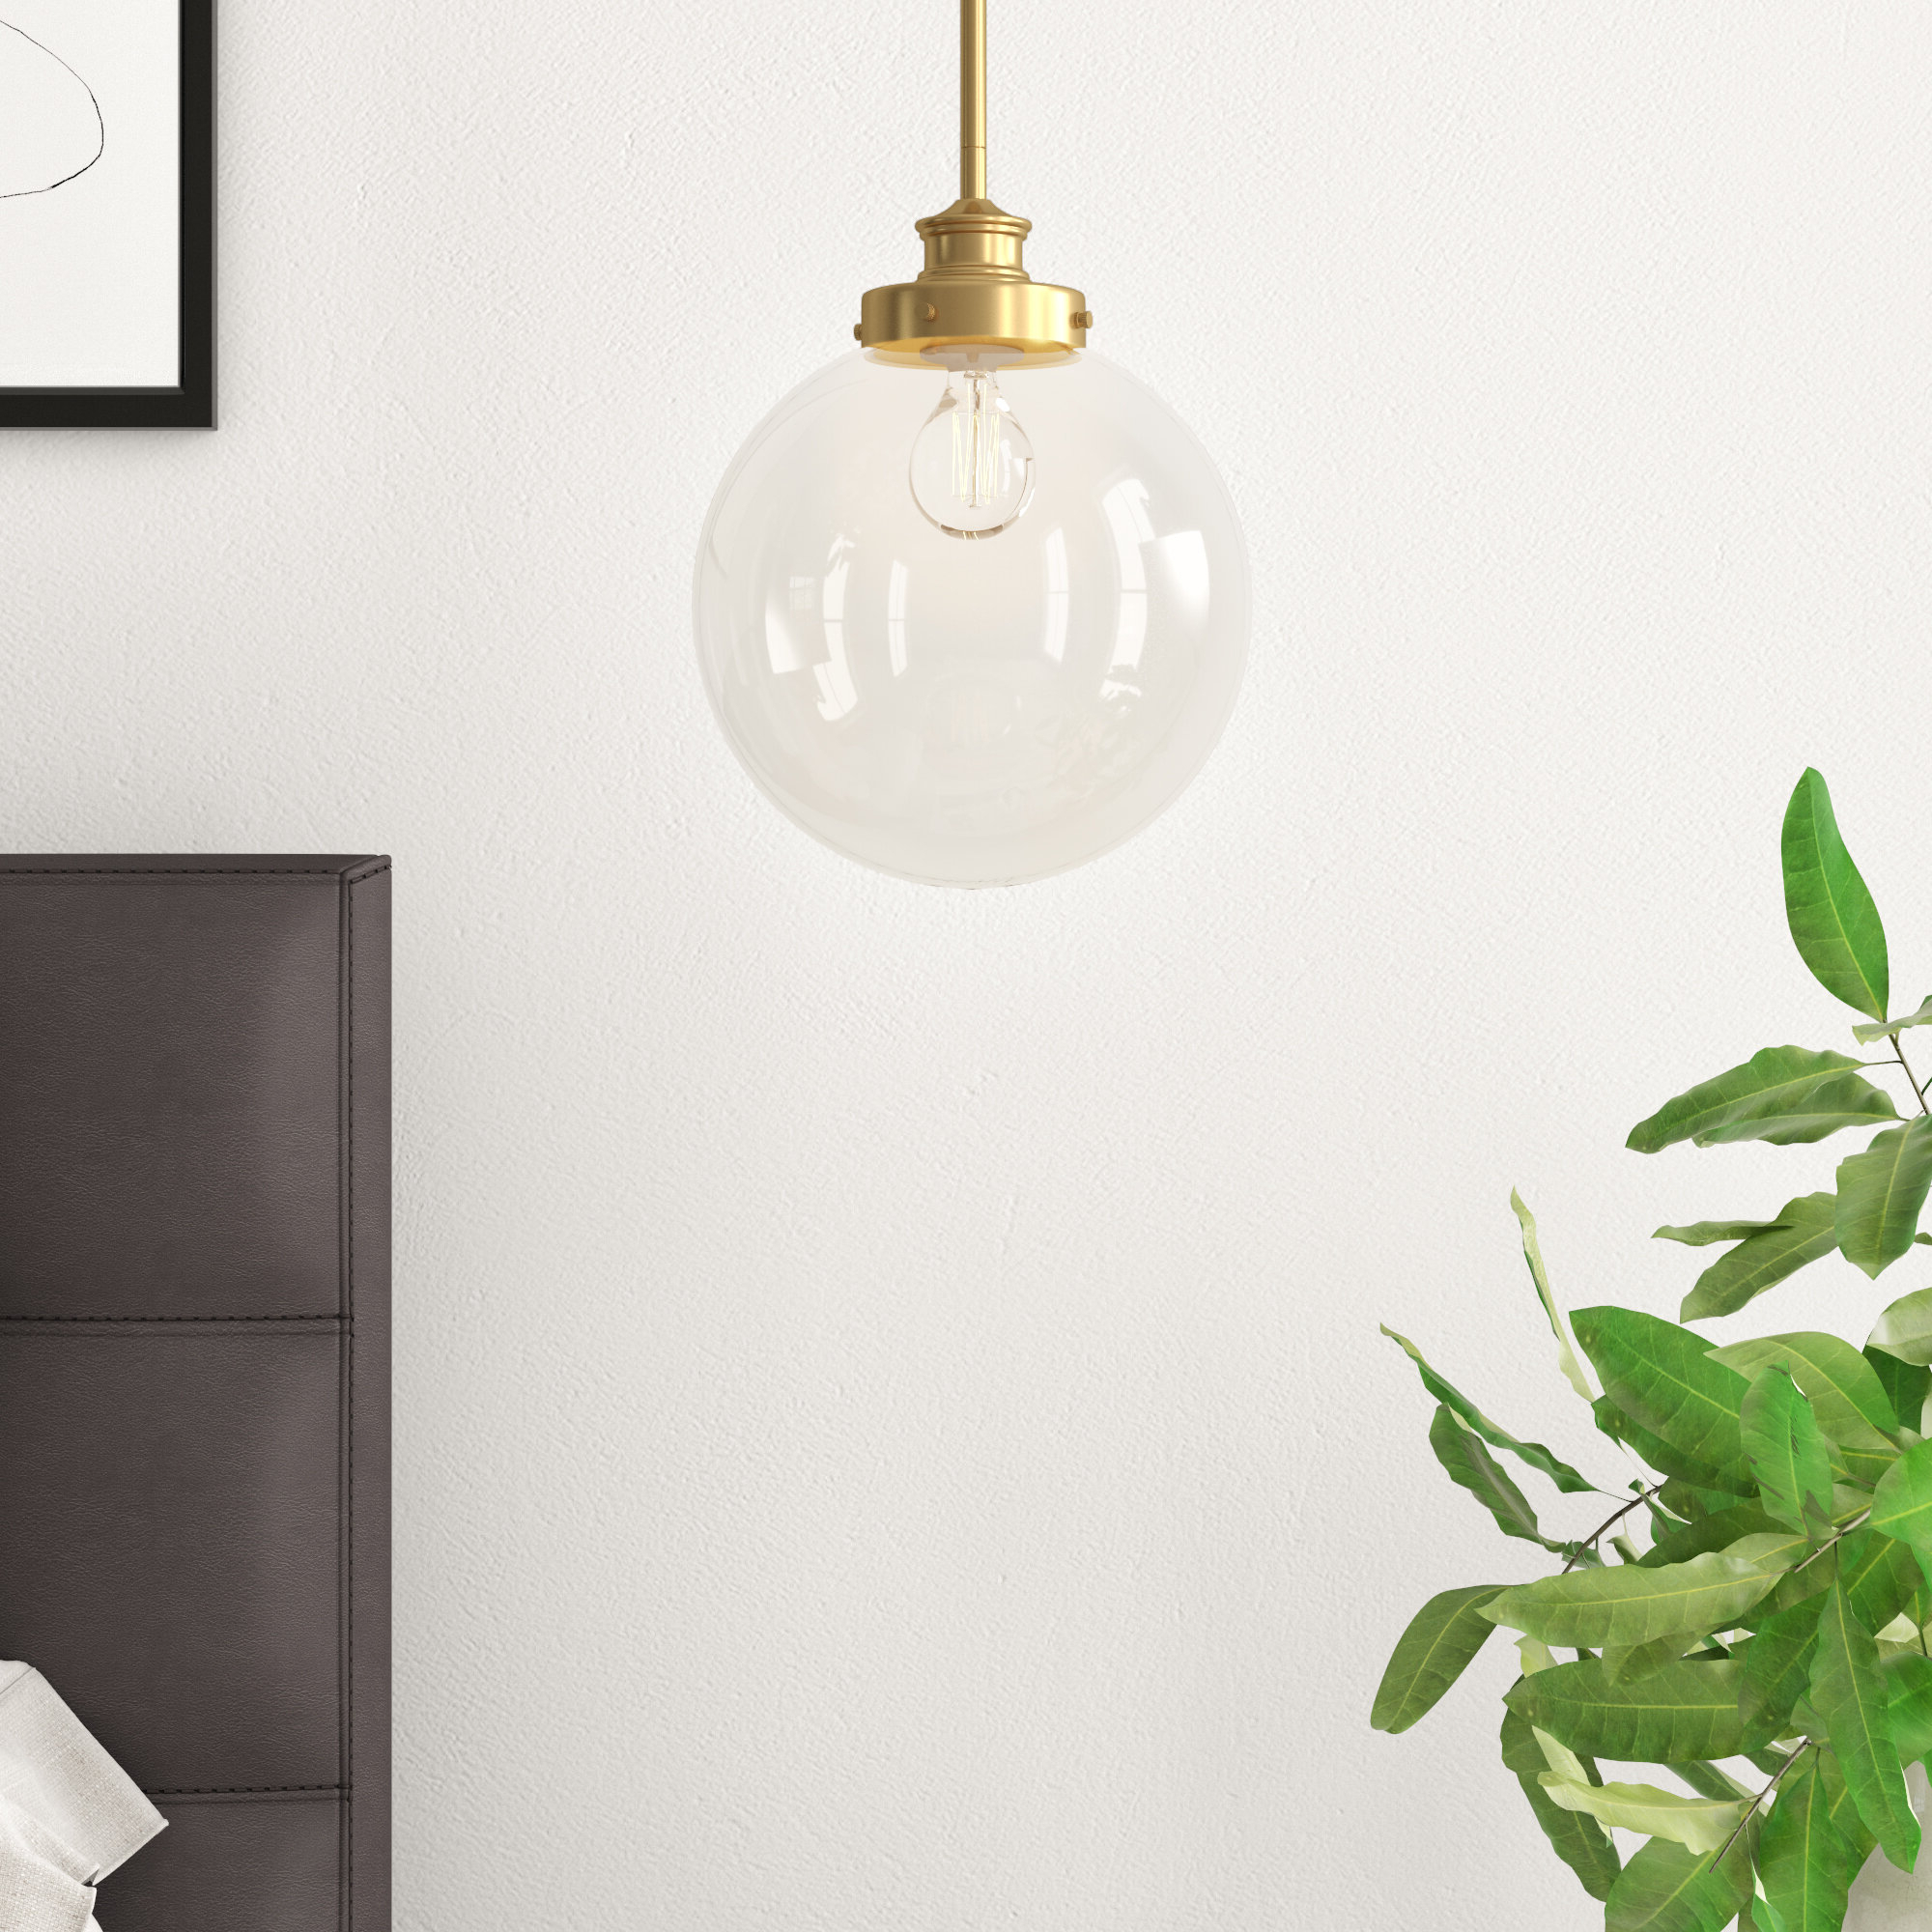 Bundy 1 Light Single Globe Pendants Pertaining To Best And Newest Cayden 1 Light Single Globe Pendant (Gallery 13 of 20)